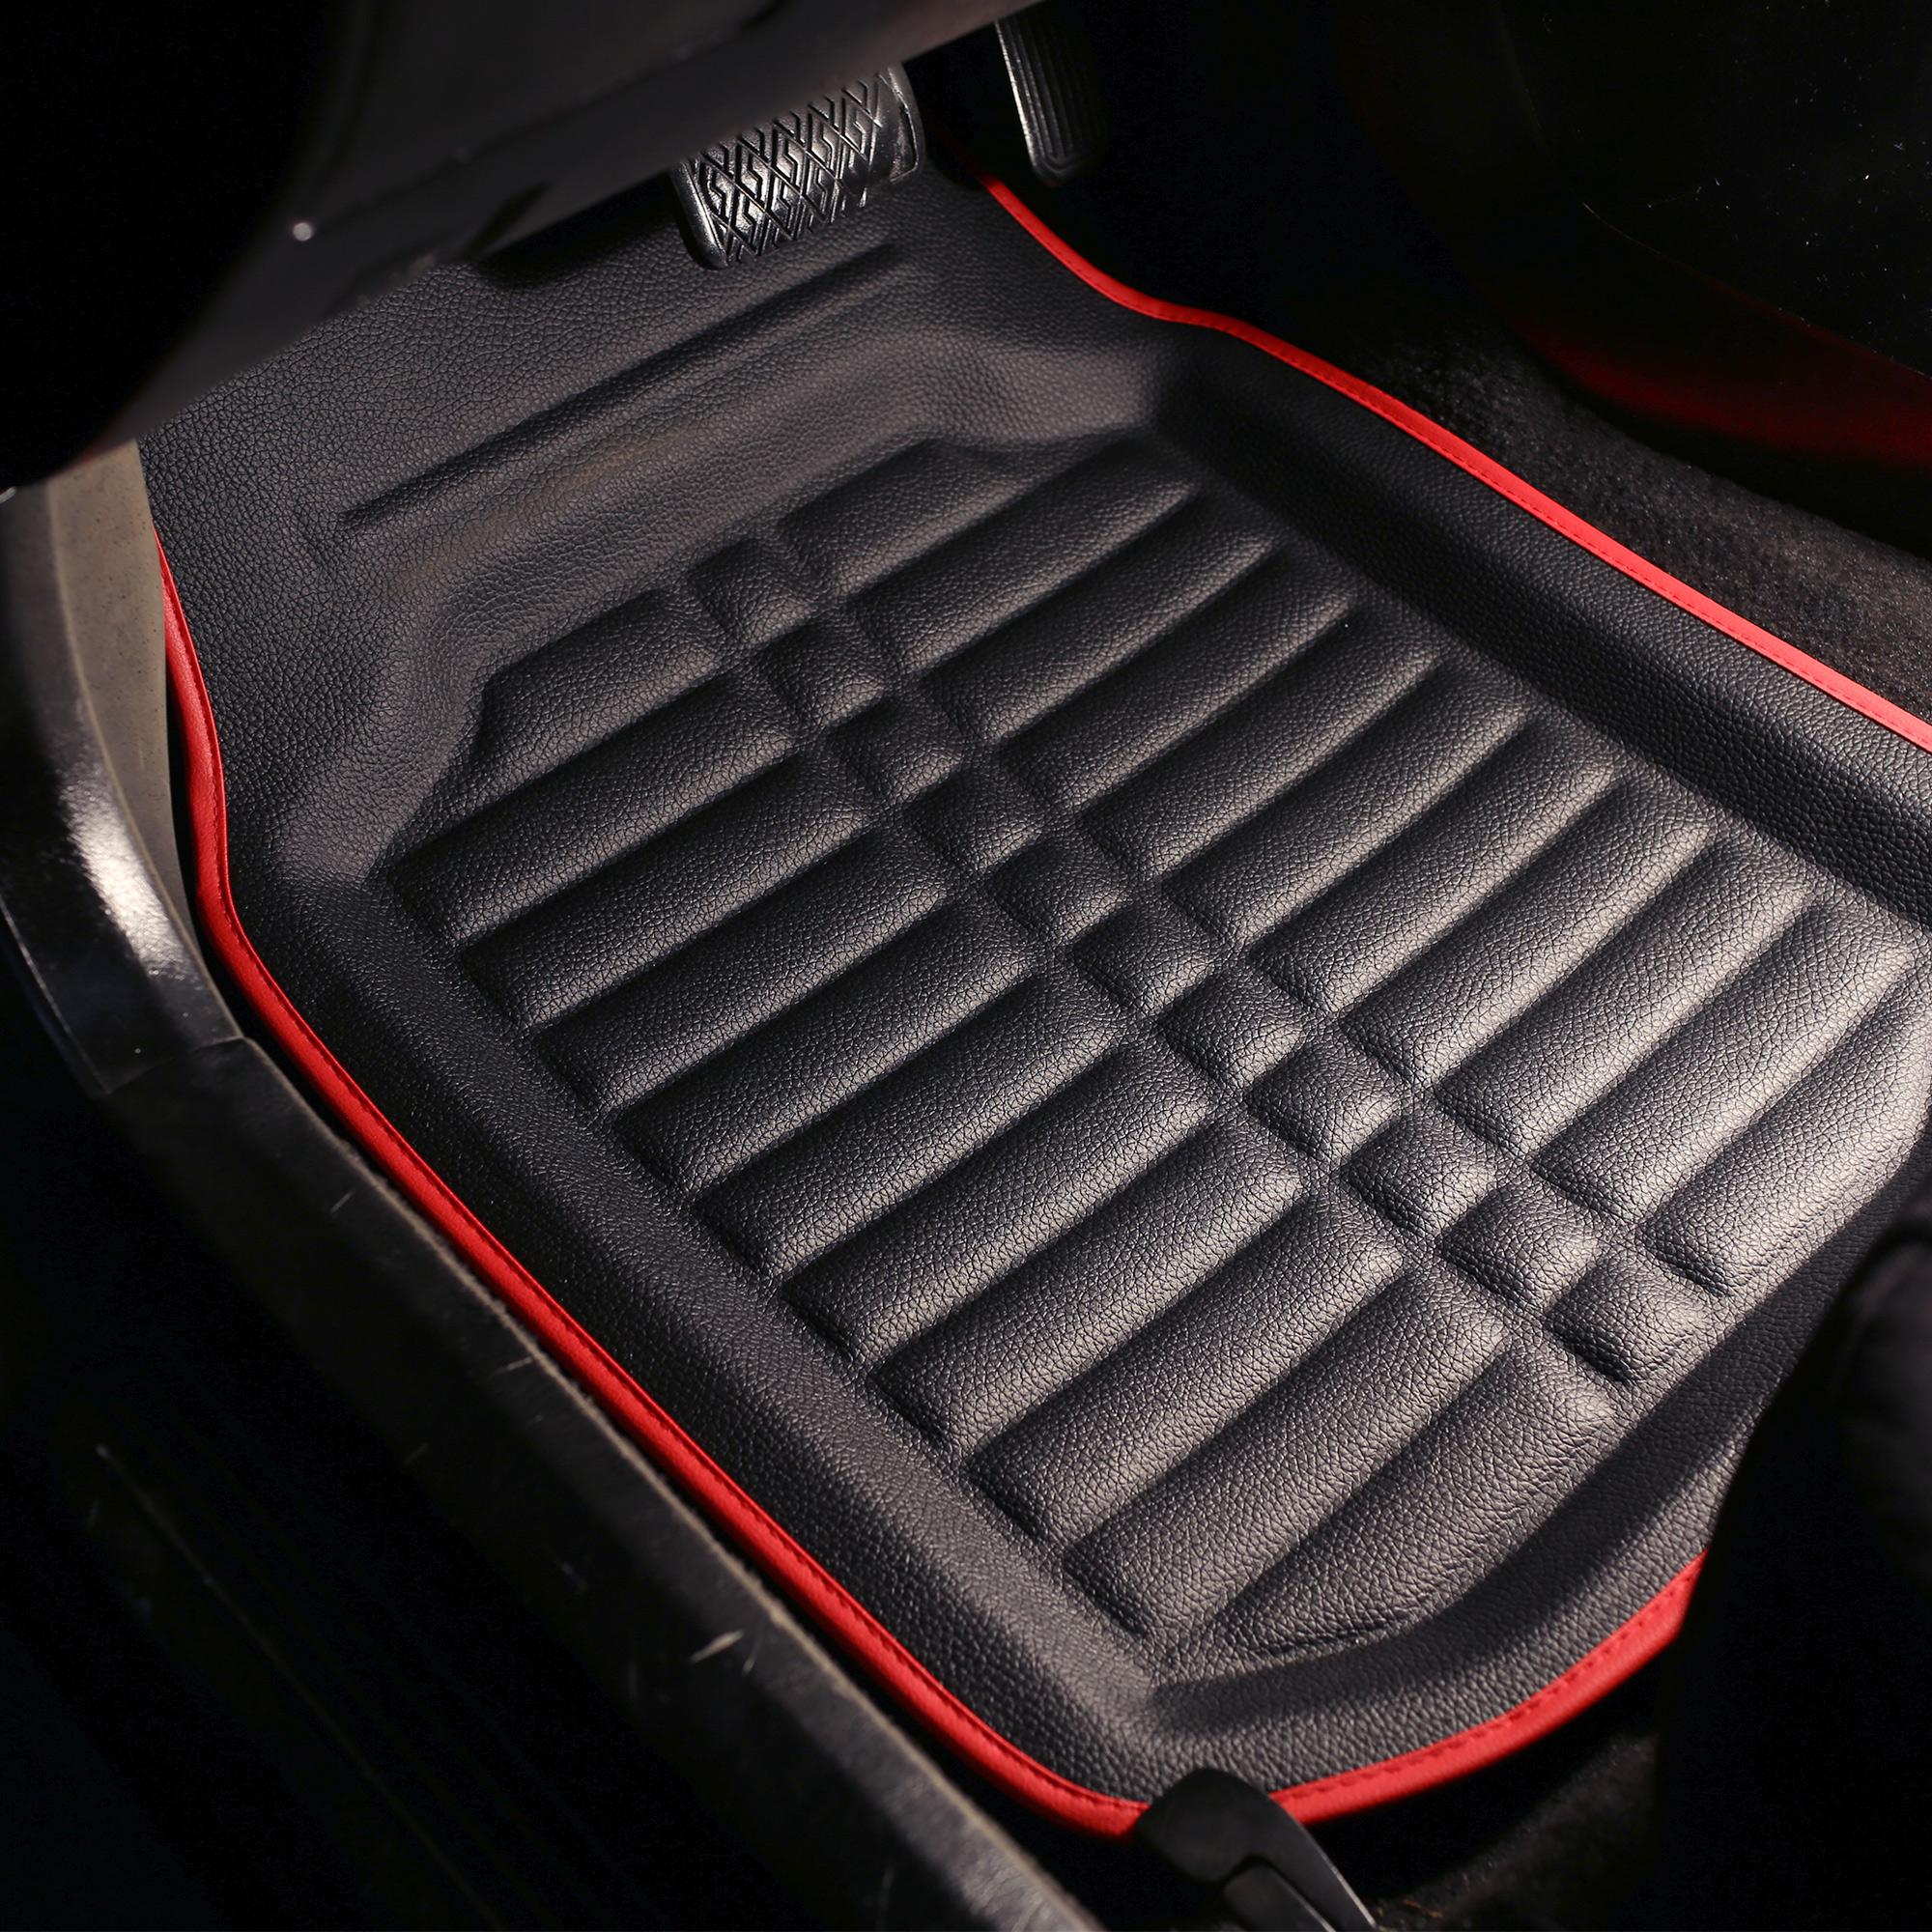 passenger lexus mats is weather floor drgnfenx all rear mat